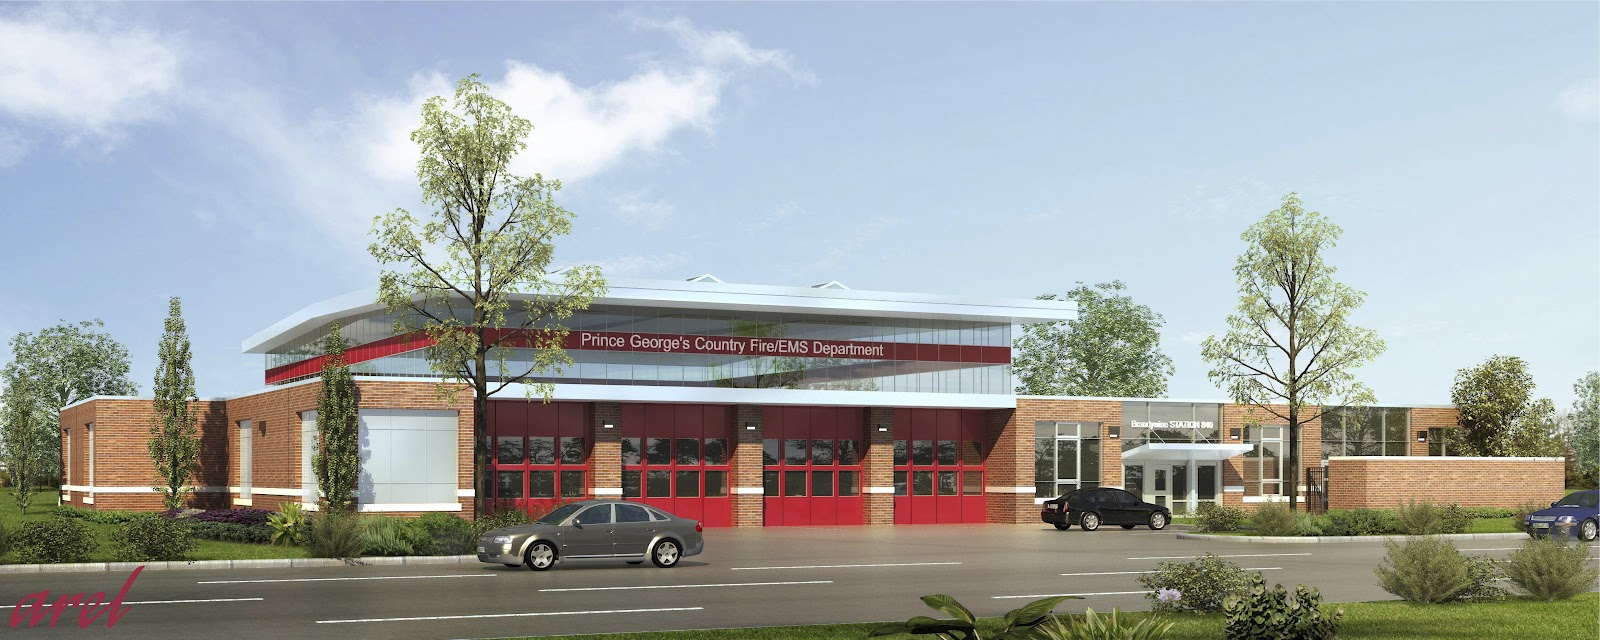 Prince George's County Fire/EMS Department: Jun 13, 2012